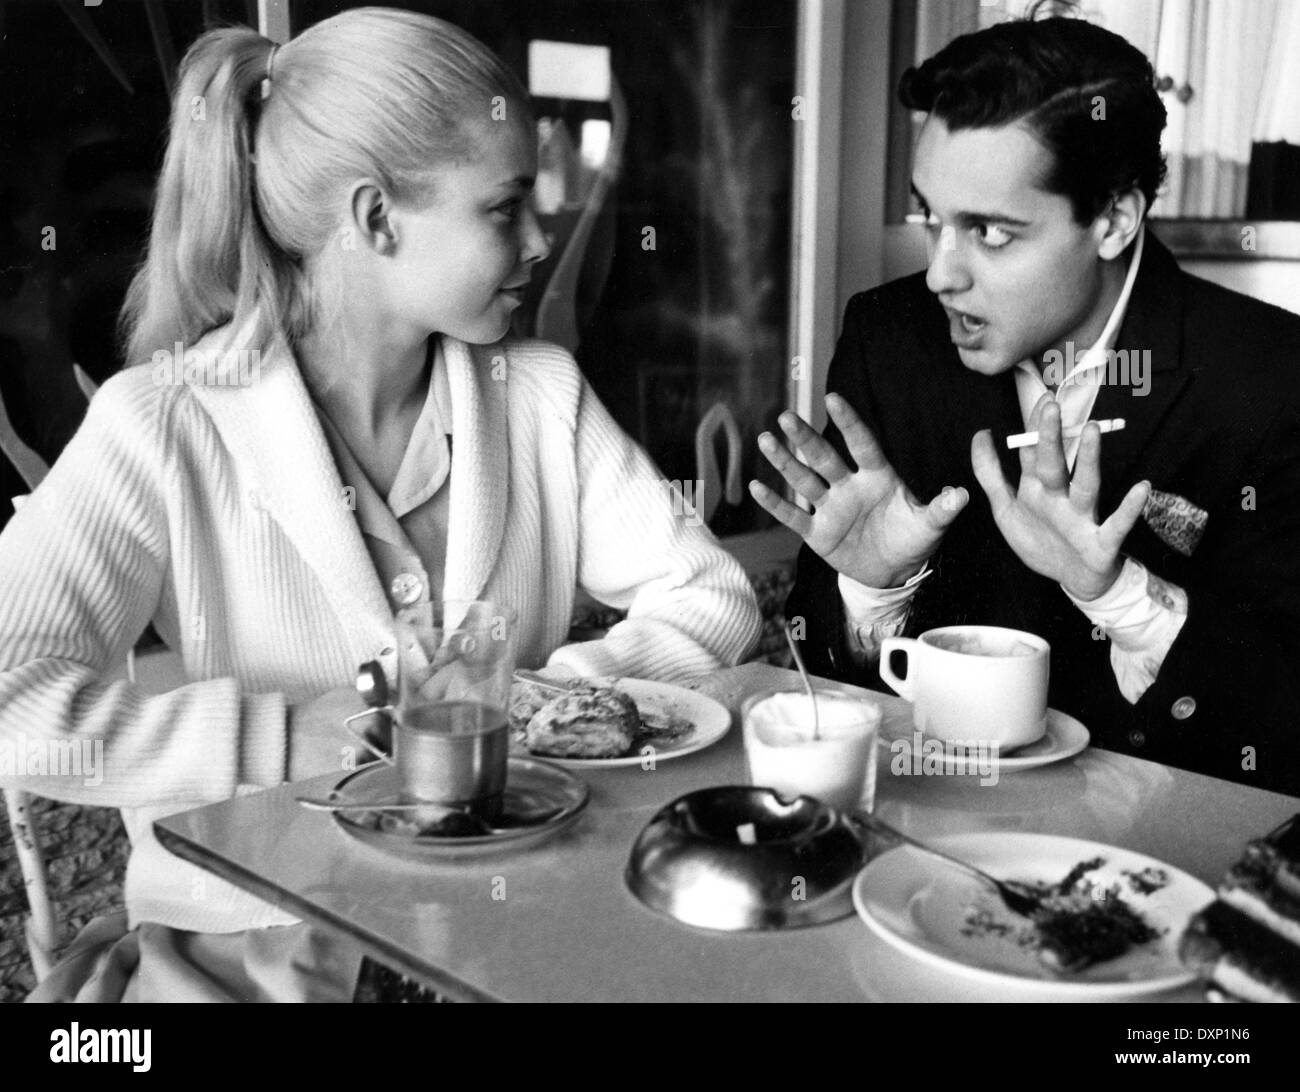 jill haworth and sal mineo during the making of exodus